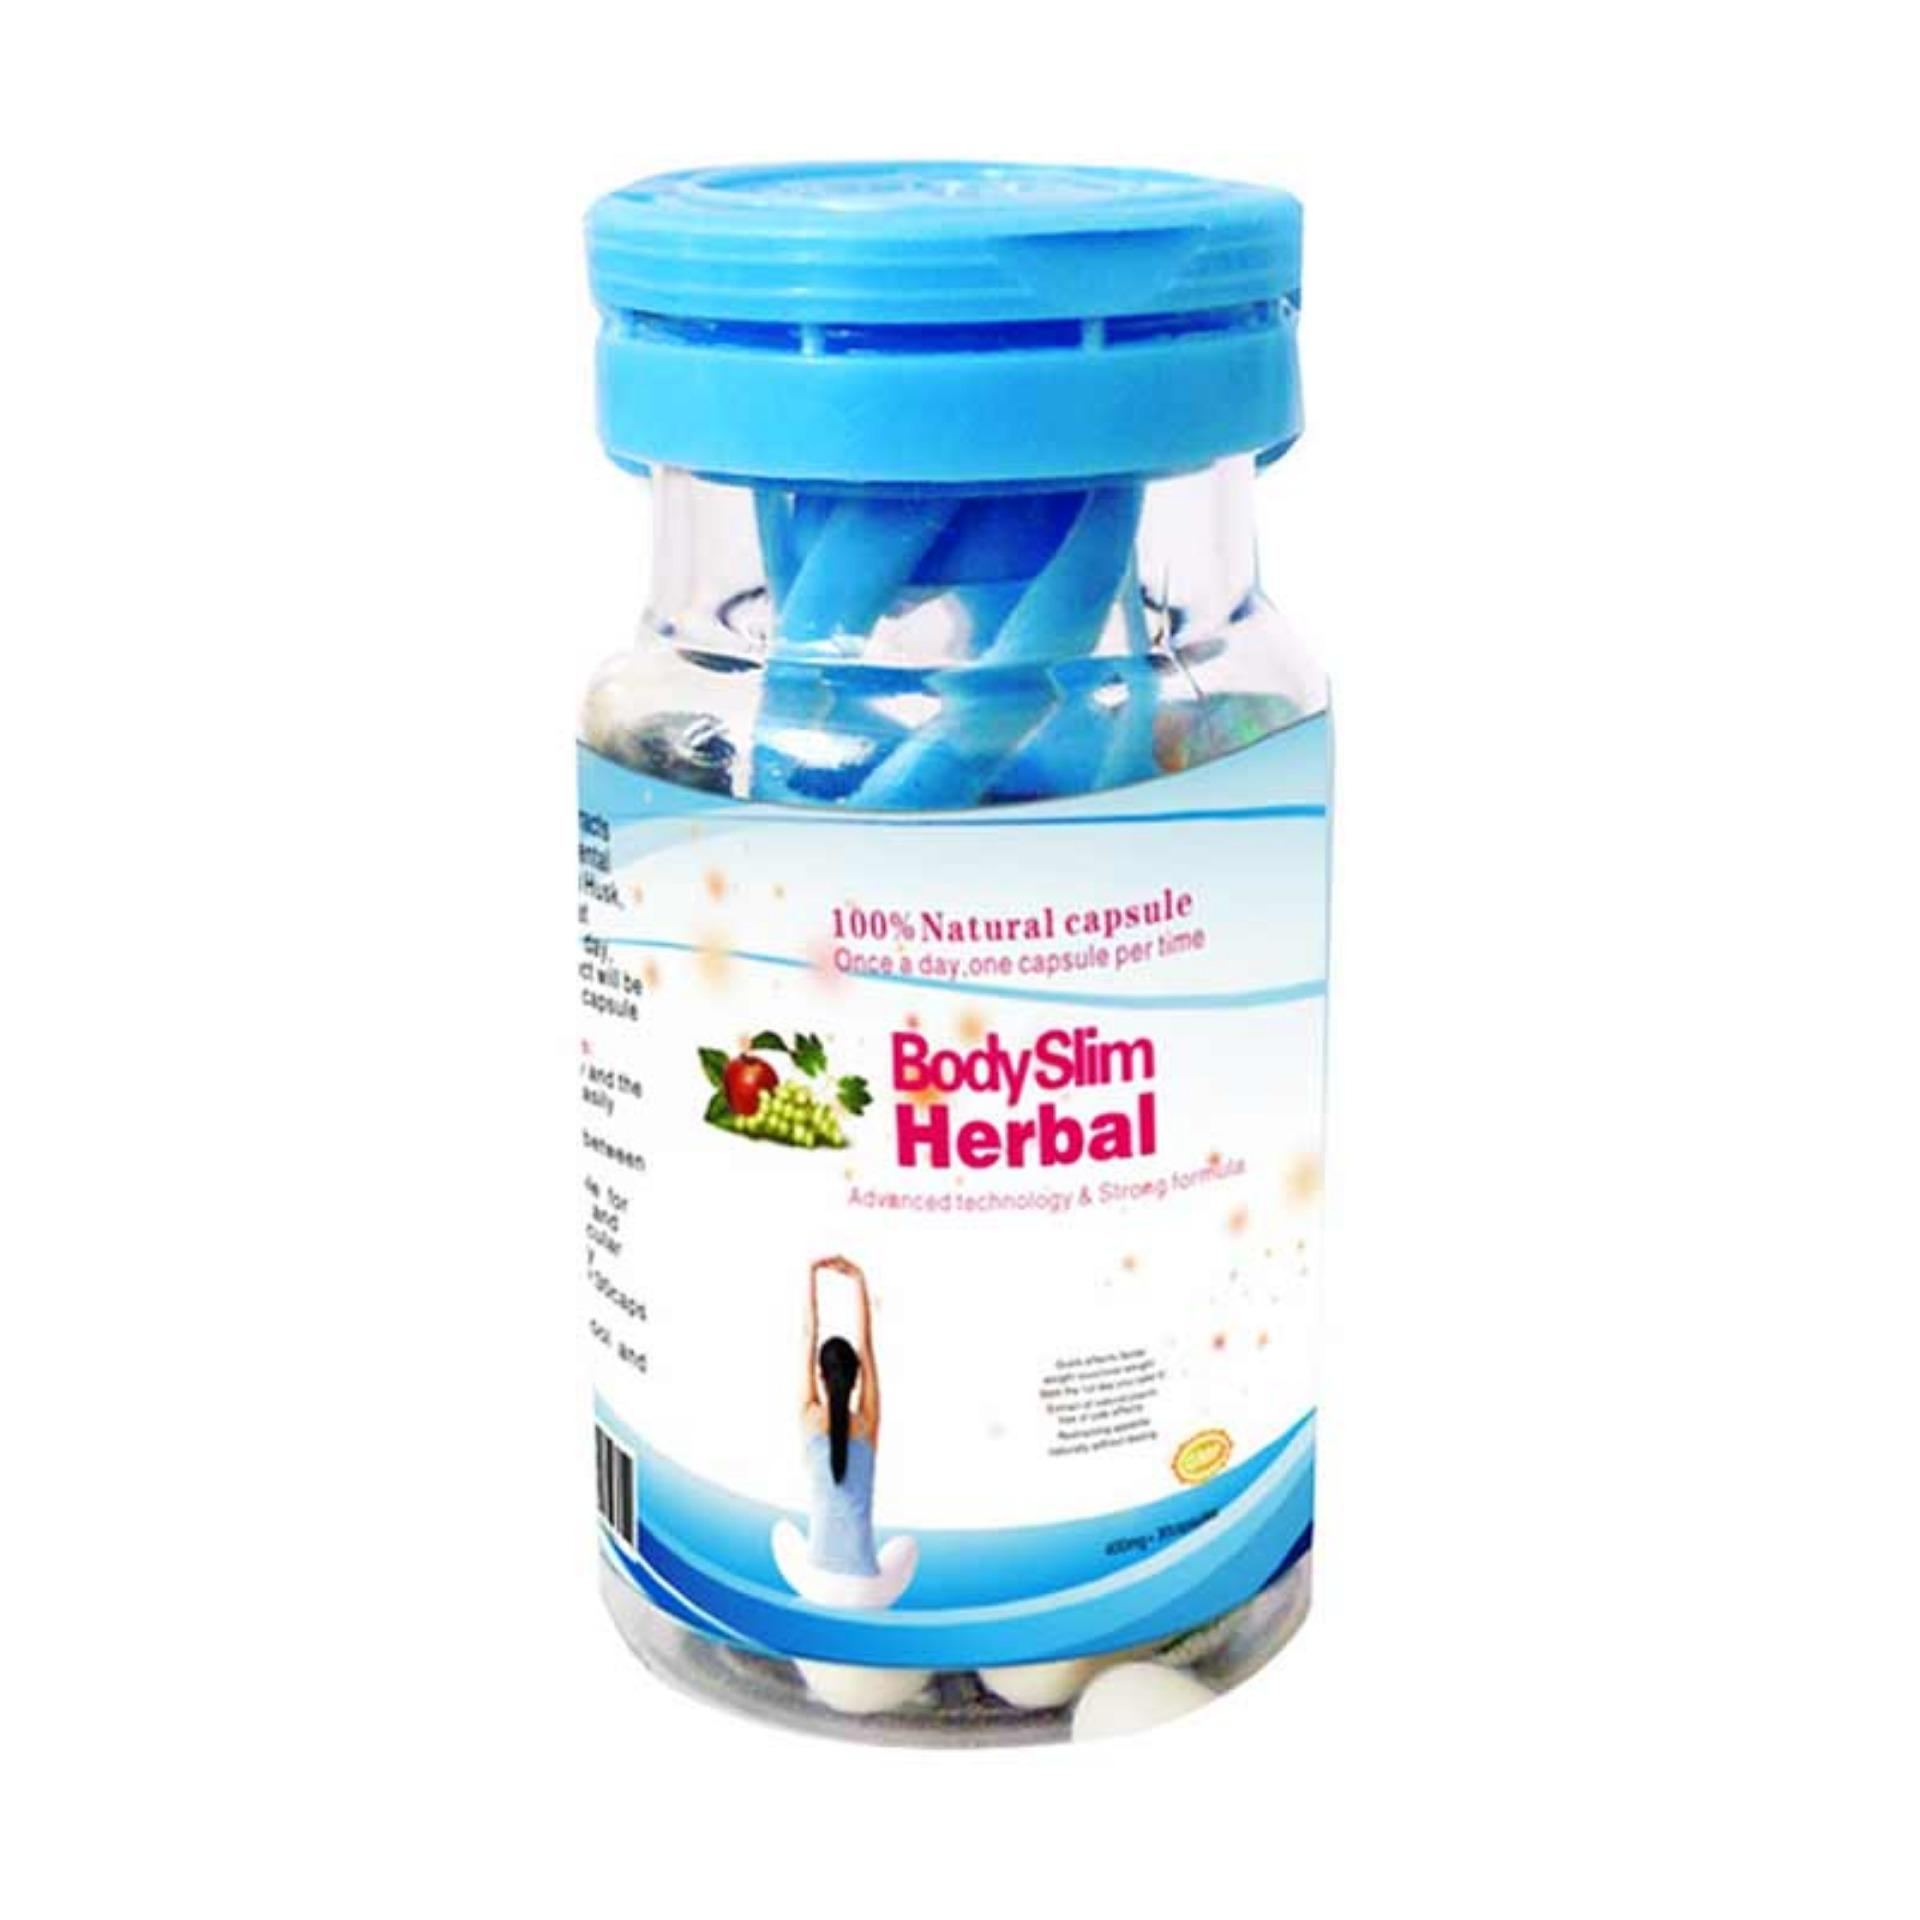 ... BSH Capsul Body Slim Herbal Suplemen - Putih [Alami Dan Original] ...